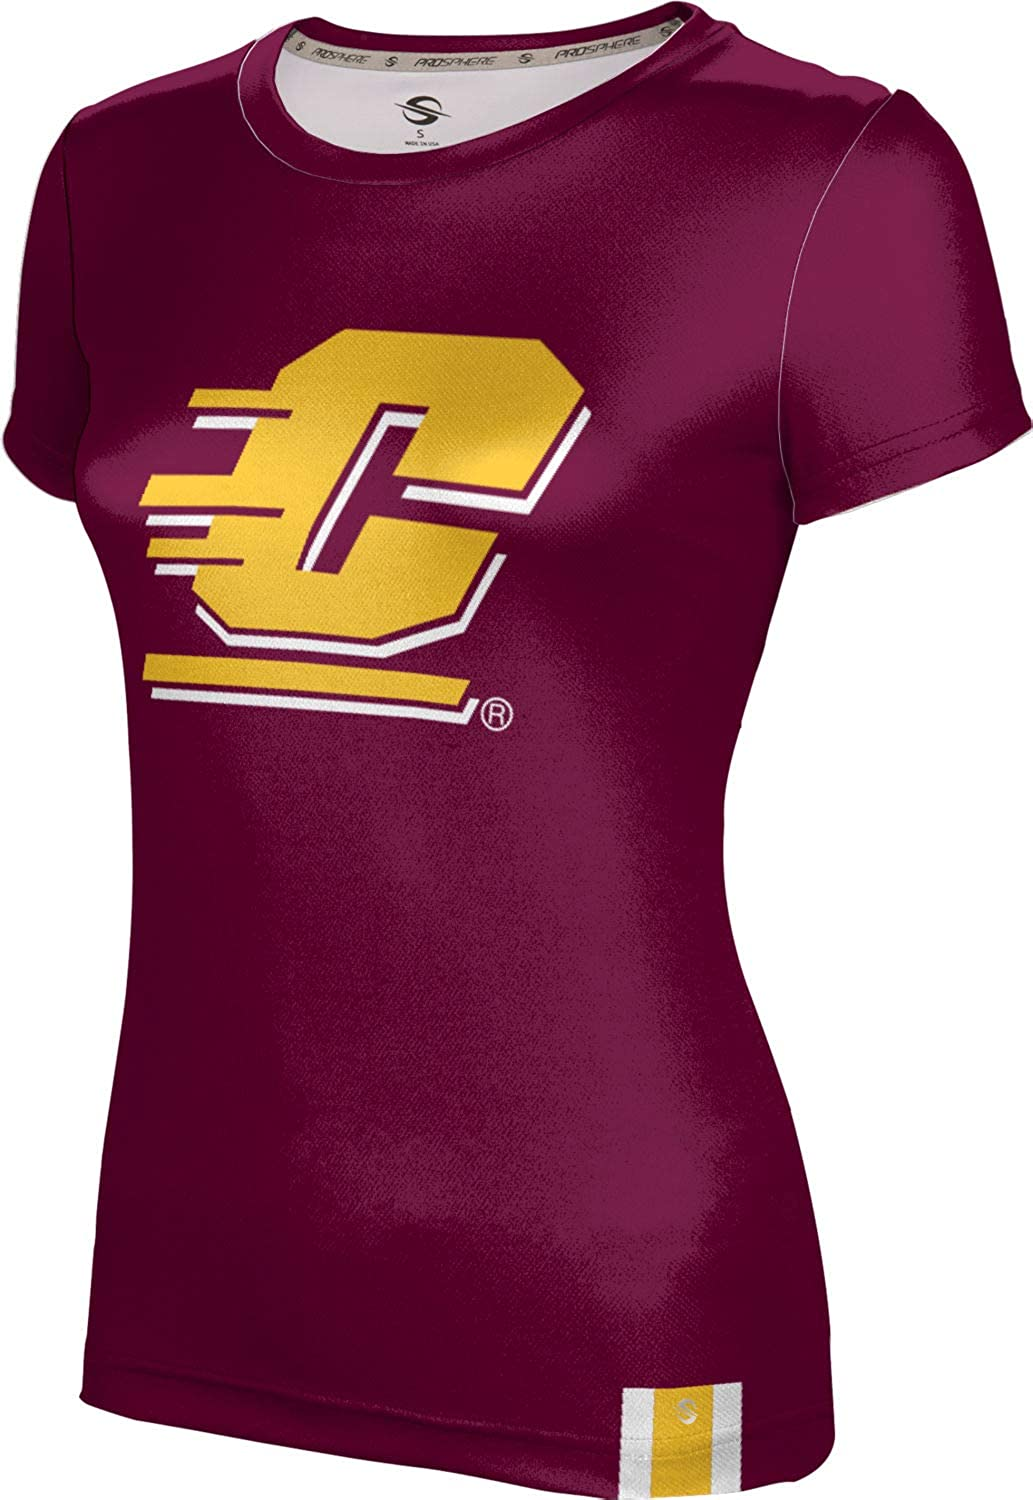 ProSphere Central Michigan University Girls' Performance T-Shirt (Solid)